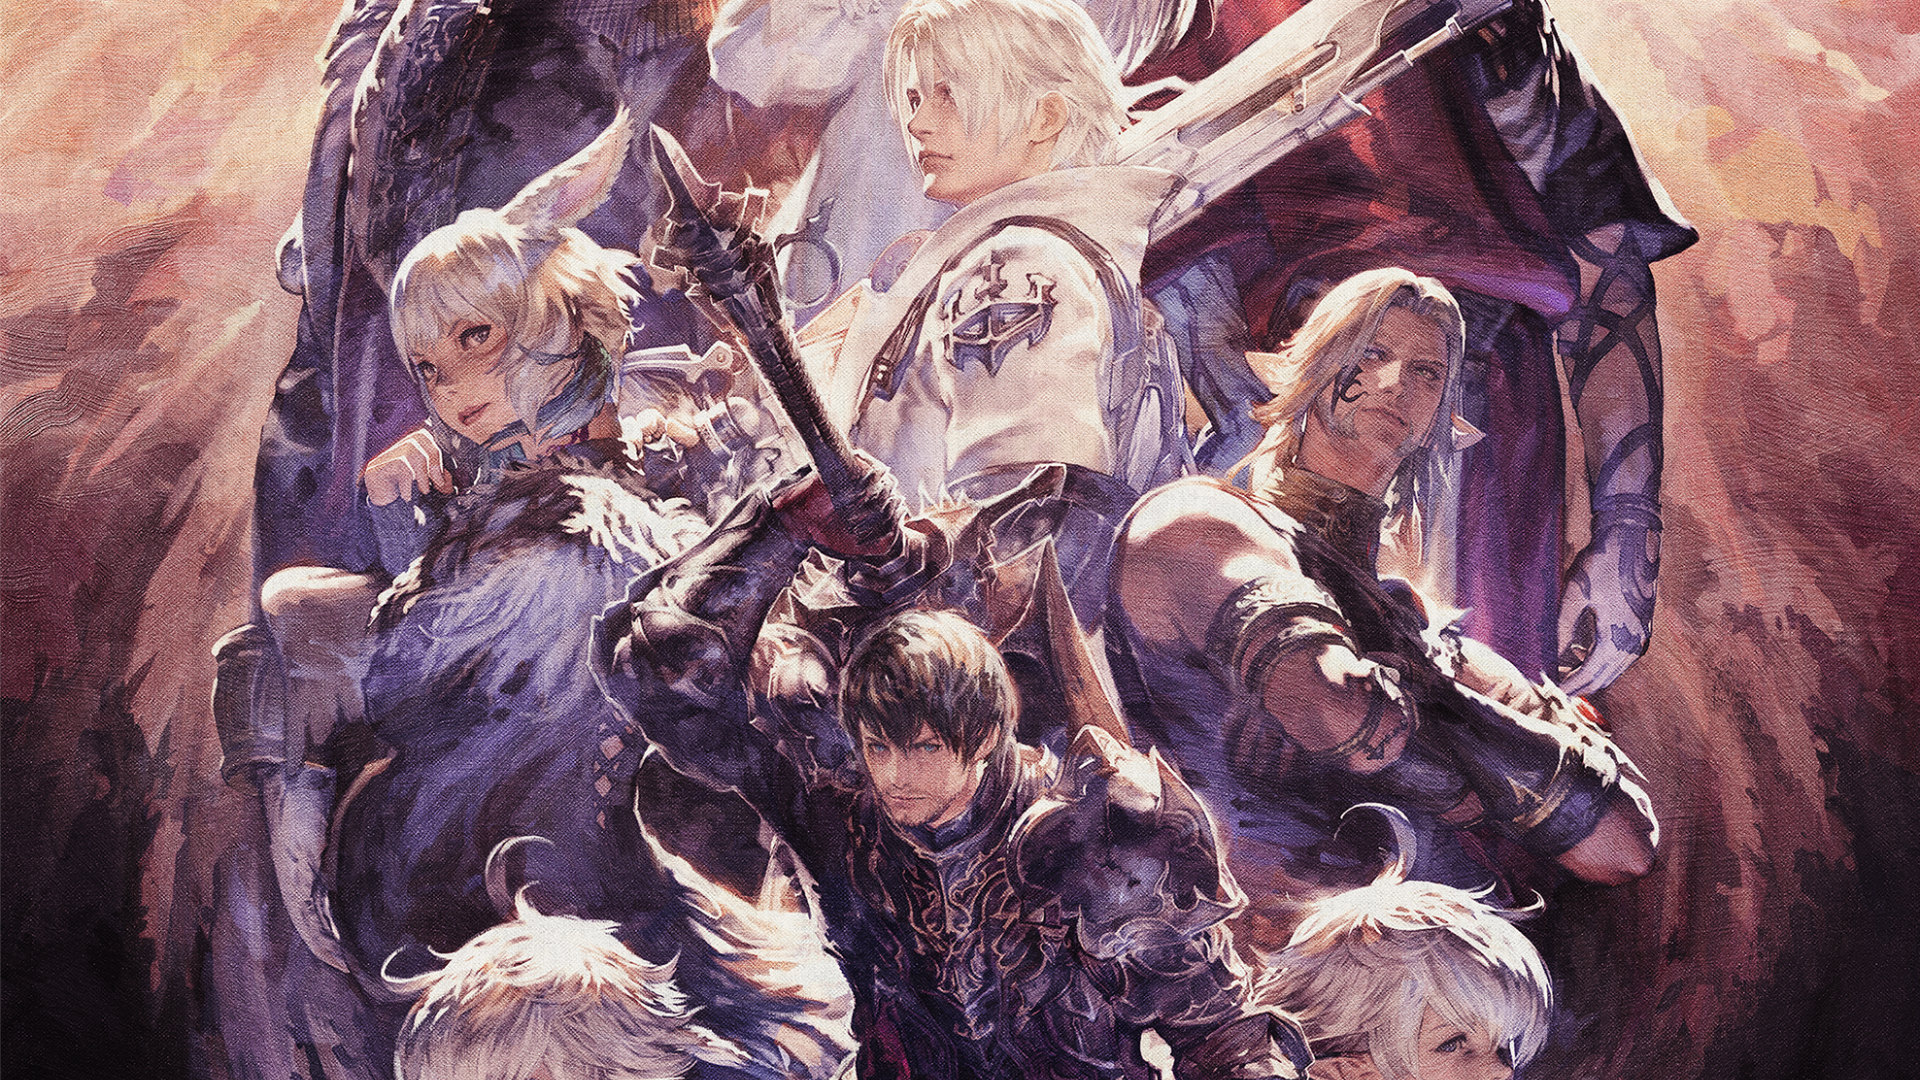 Final Fantasy XIV: Final Fantasy XIV: Shadowbringers